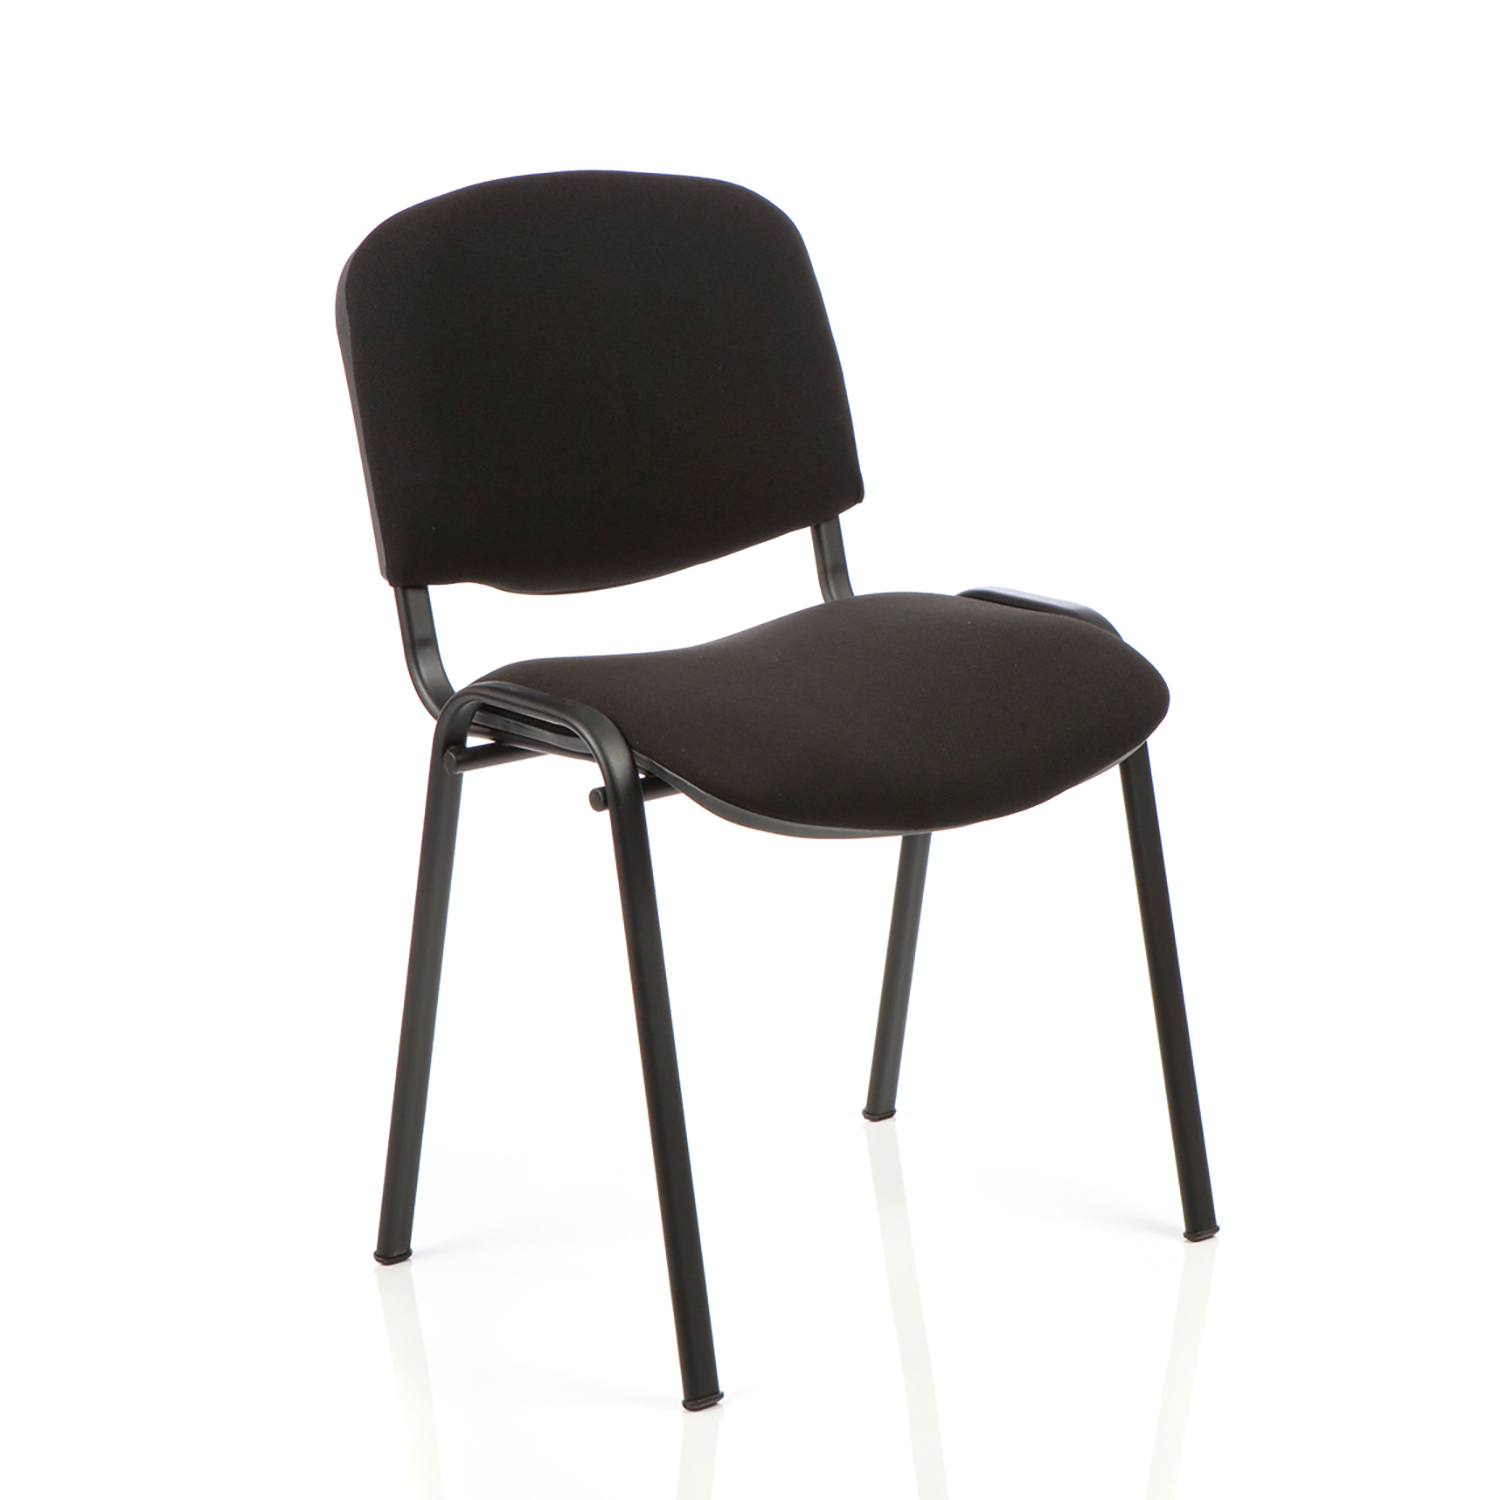 &Trexus Stacking Chair Black Frame Black 480x420x500mm Ref SP438150